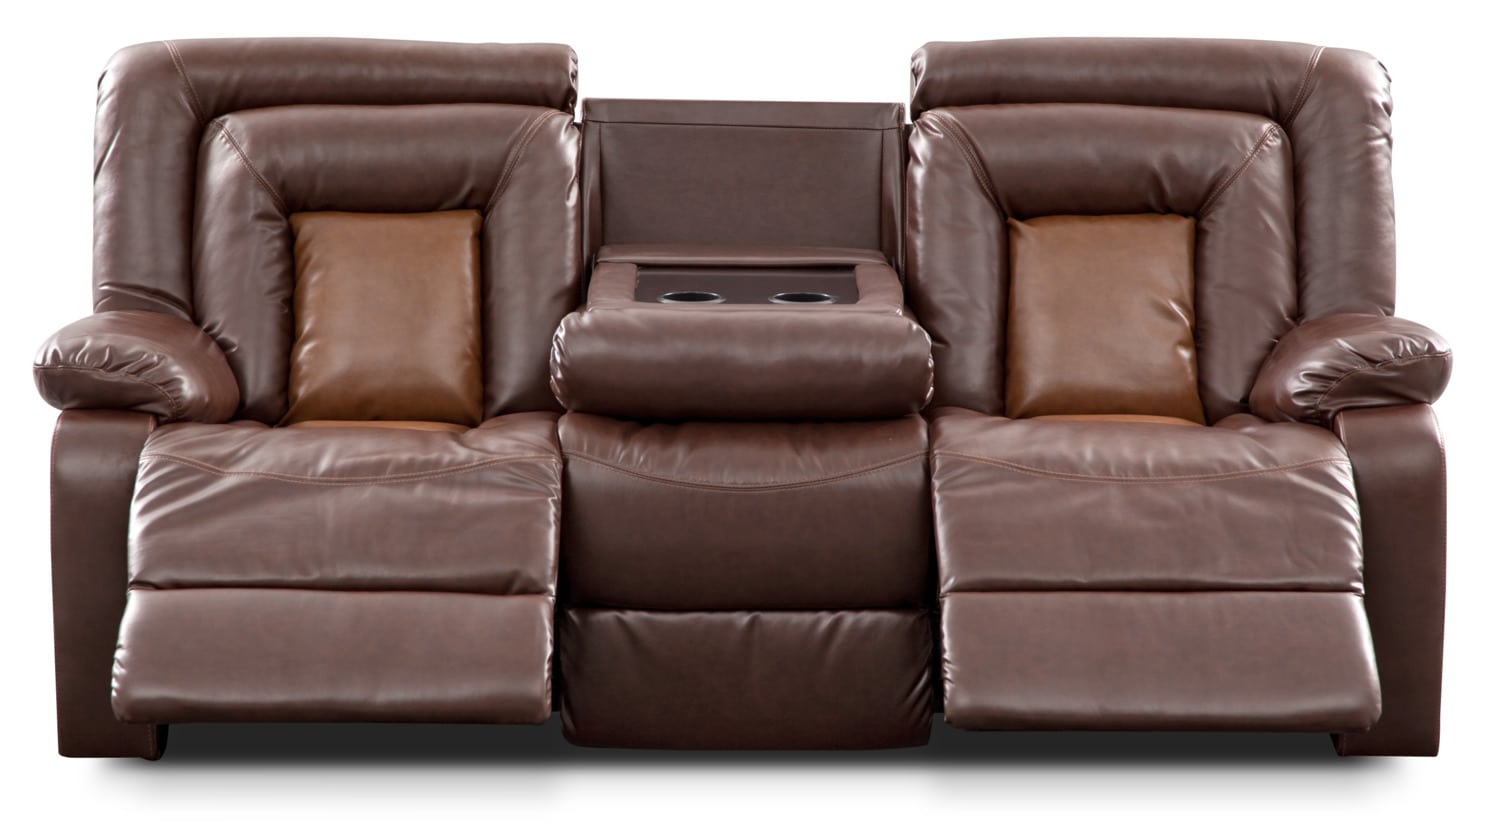 Mustang Dual Reclining Sofa With Console Brown American Signature Furniture